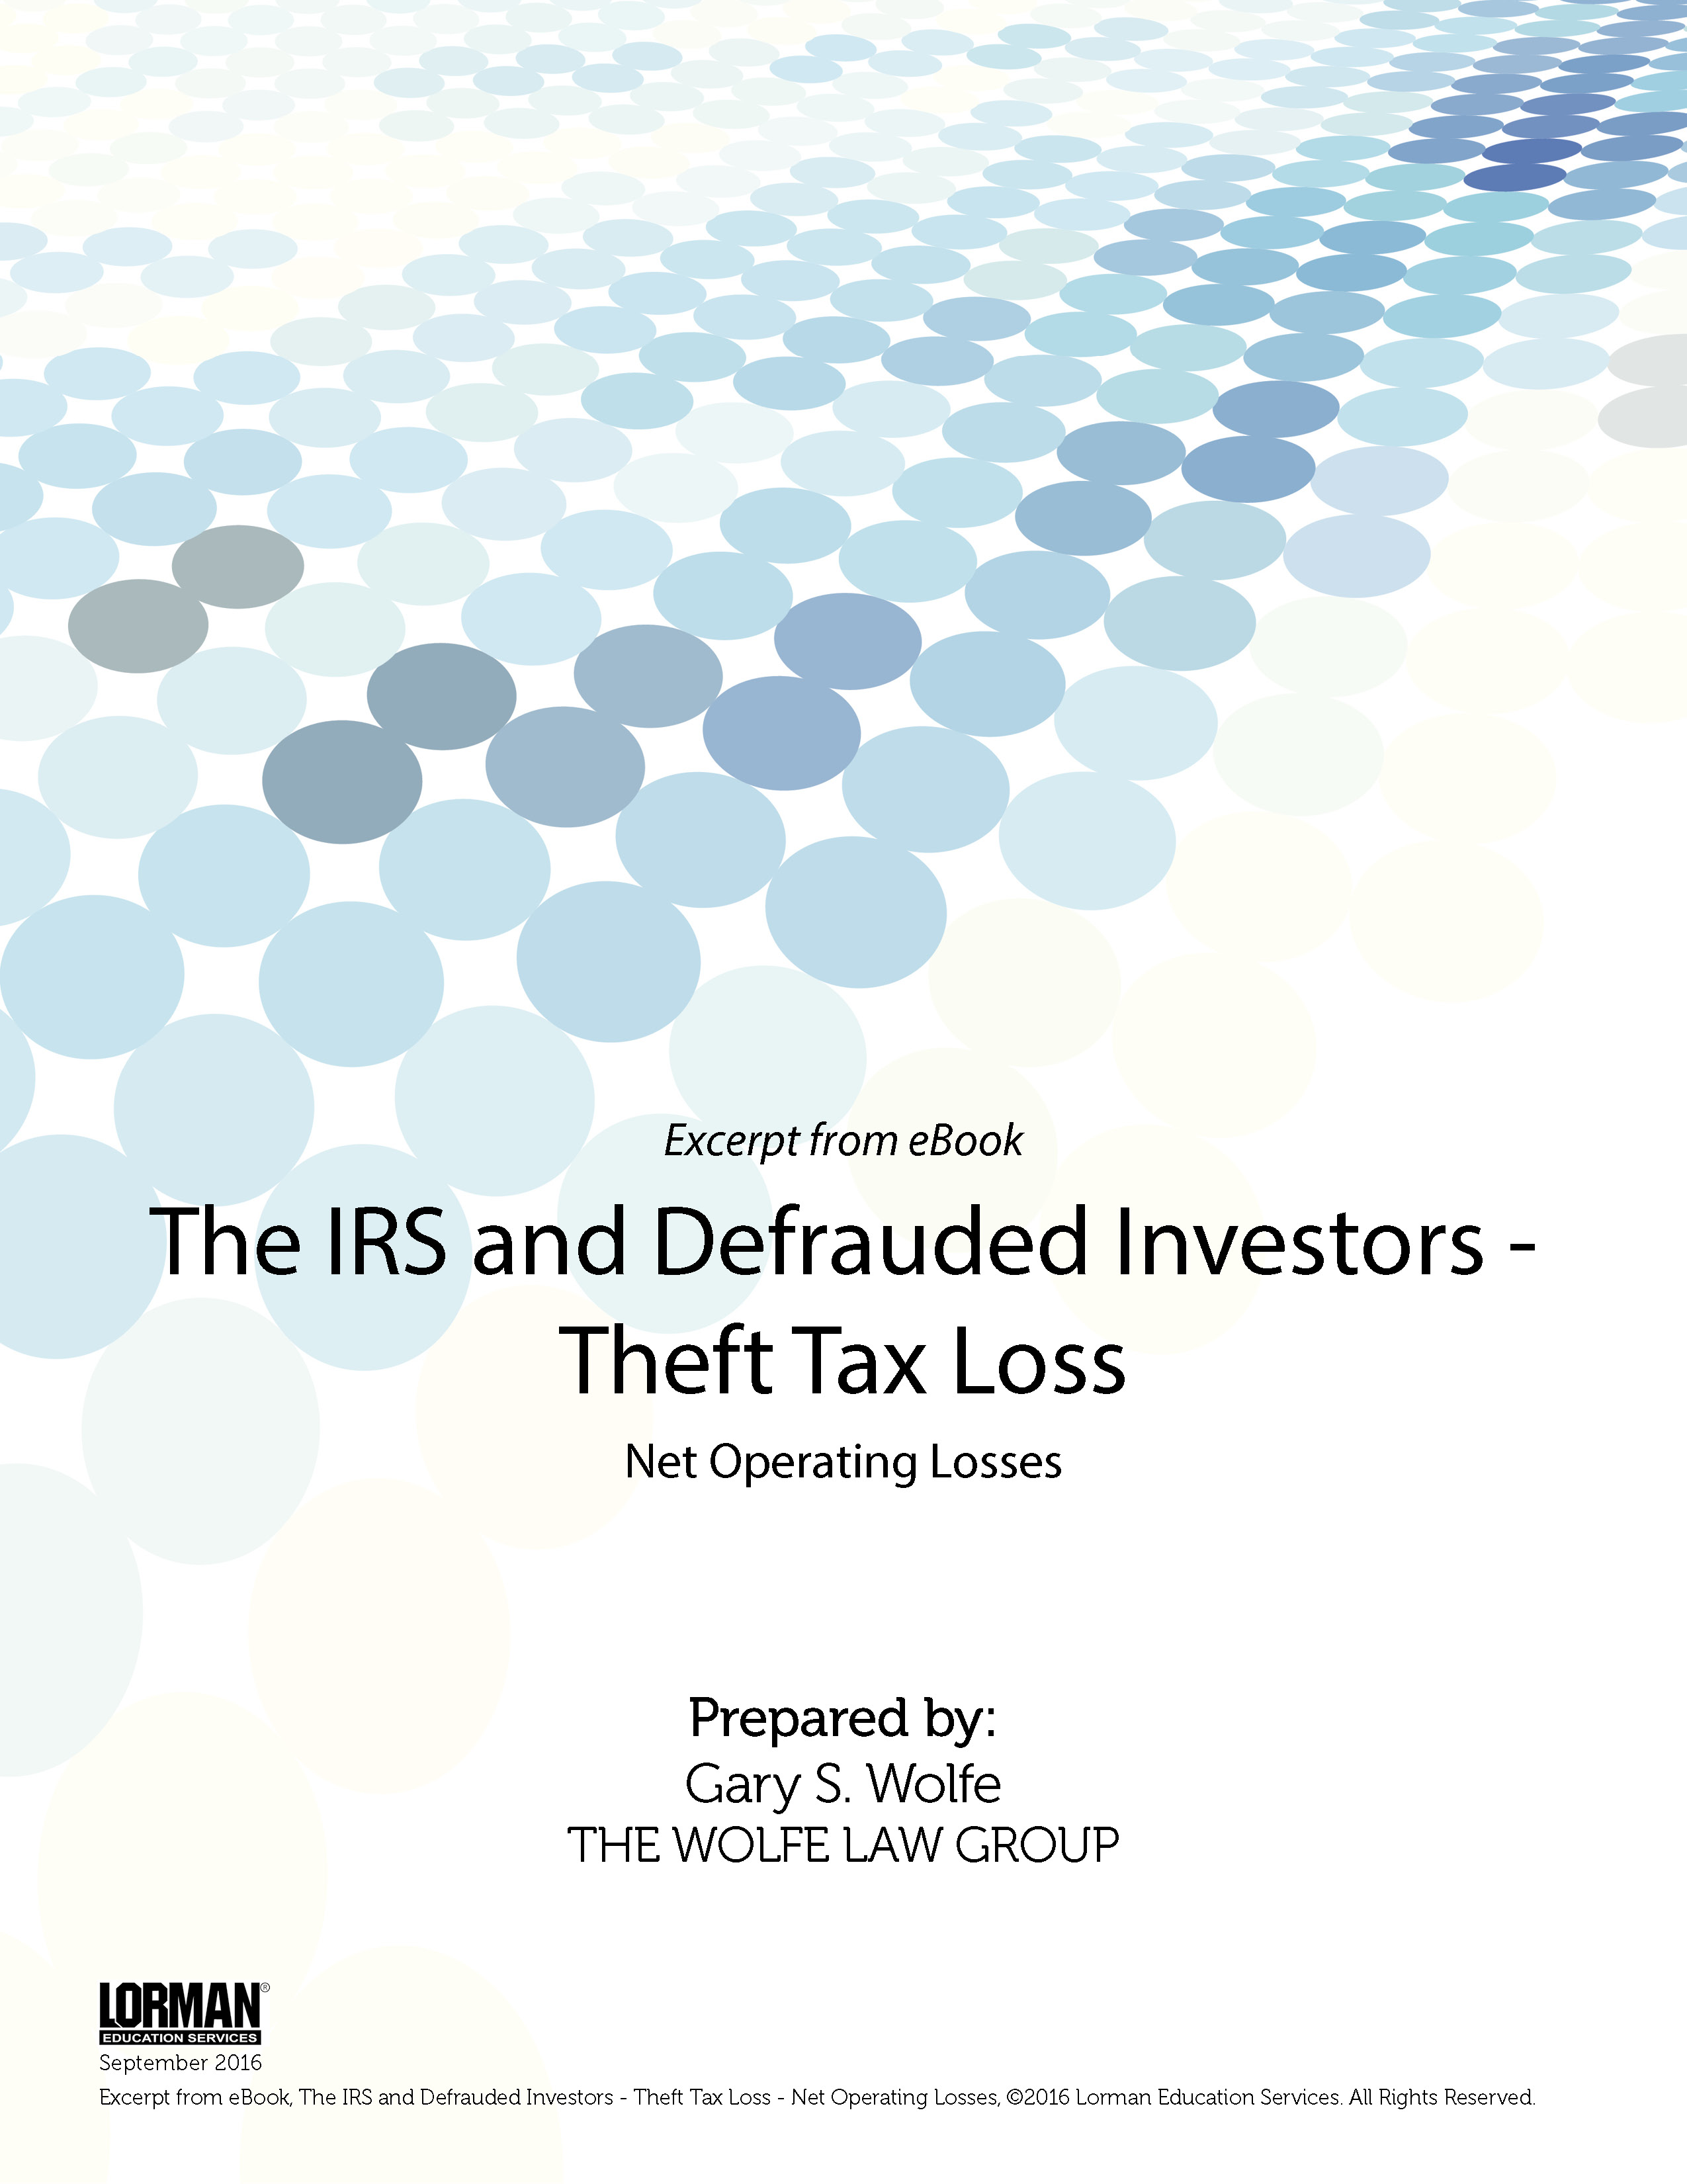 The IRS and Defrauded Investors: Theft Tax Loss - Net Operating Losses